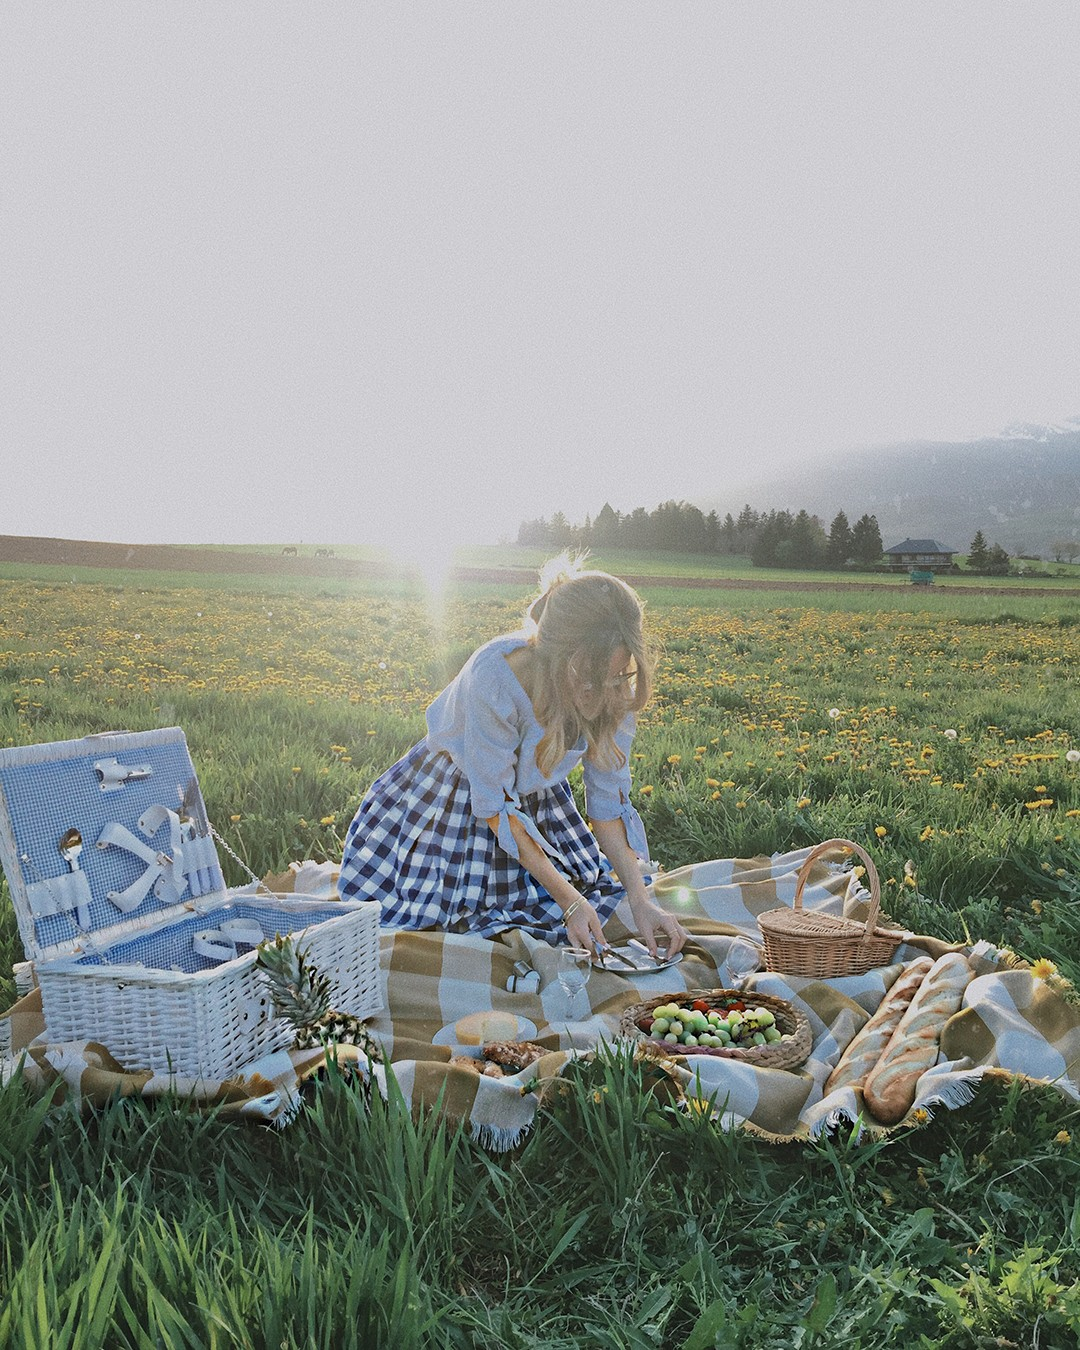 picnic-fashion-blogger-style-2017